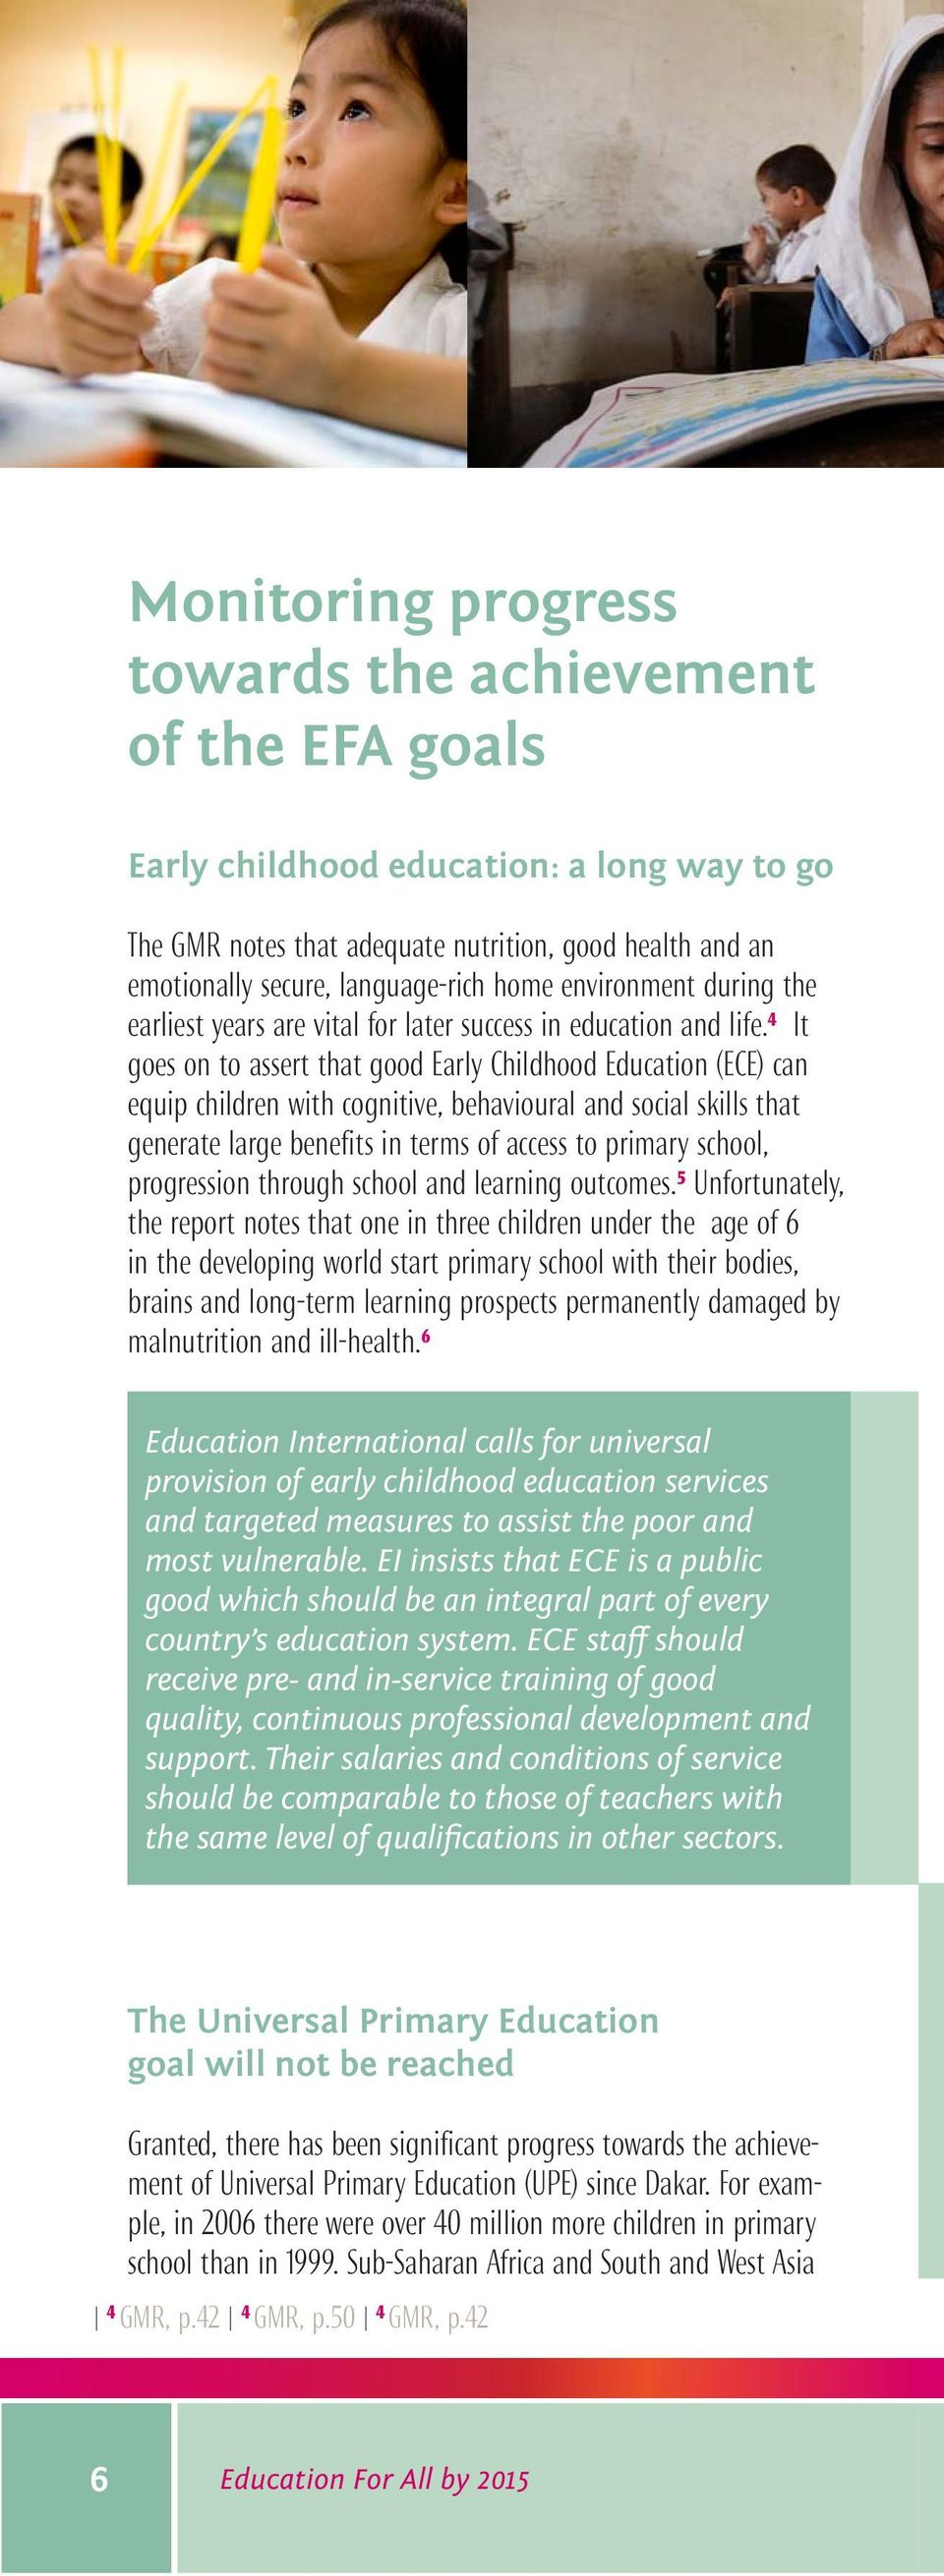 4 It goes on to assert that good Early Childhood Education (ECE) can equip children with cognitive, behavioural and social skills that generate large benefits in terms of access to primary school,